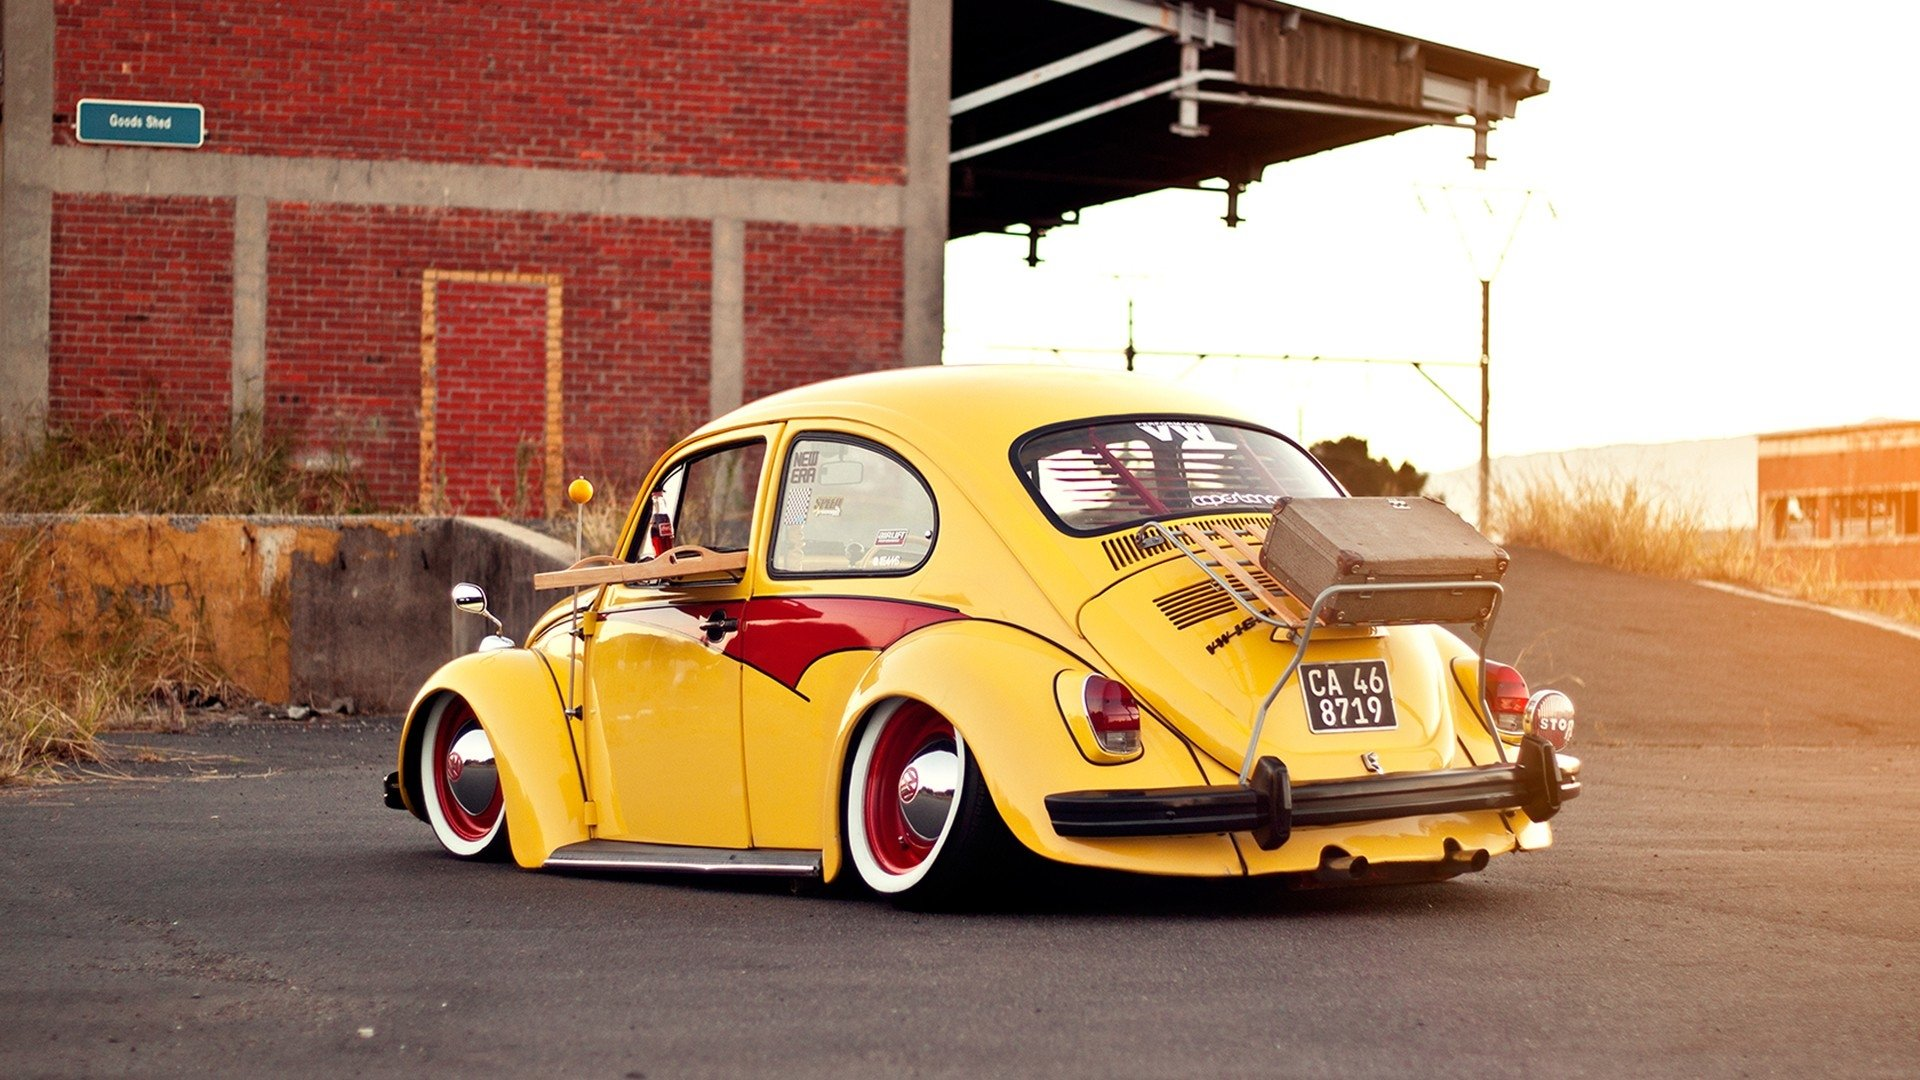 Wallpaper Klasik Keren 92 Volkswagen Beetle Hd Wallpapers Background Images Wallpaper